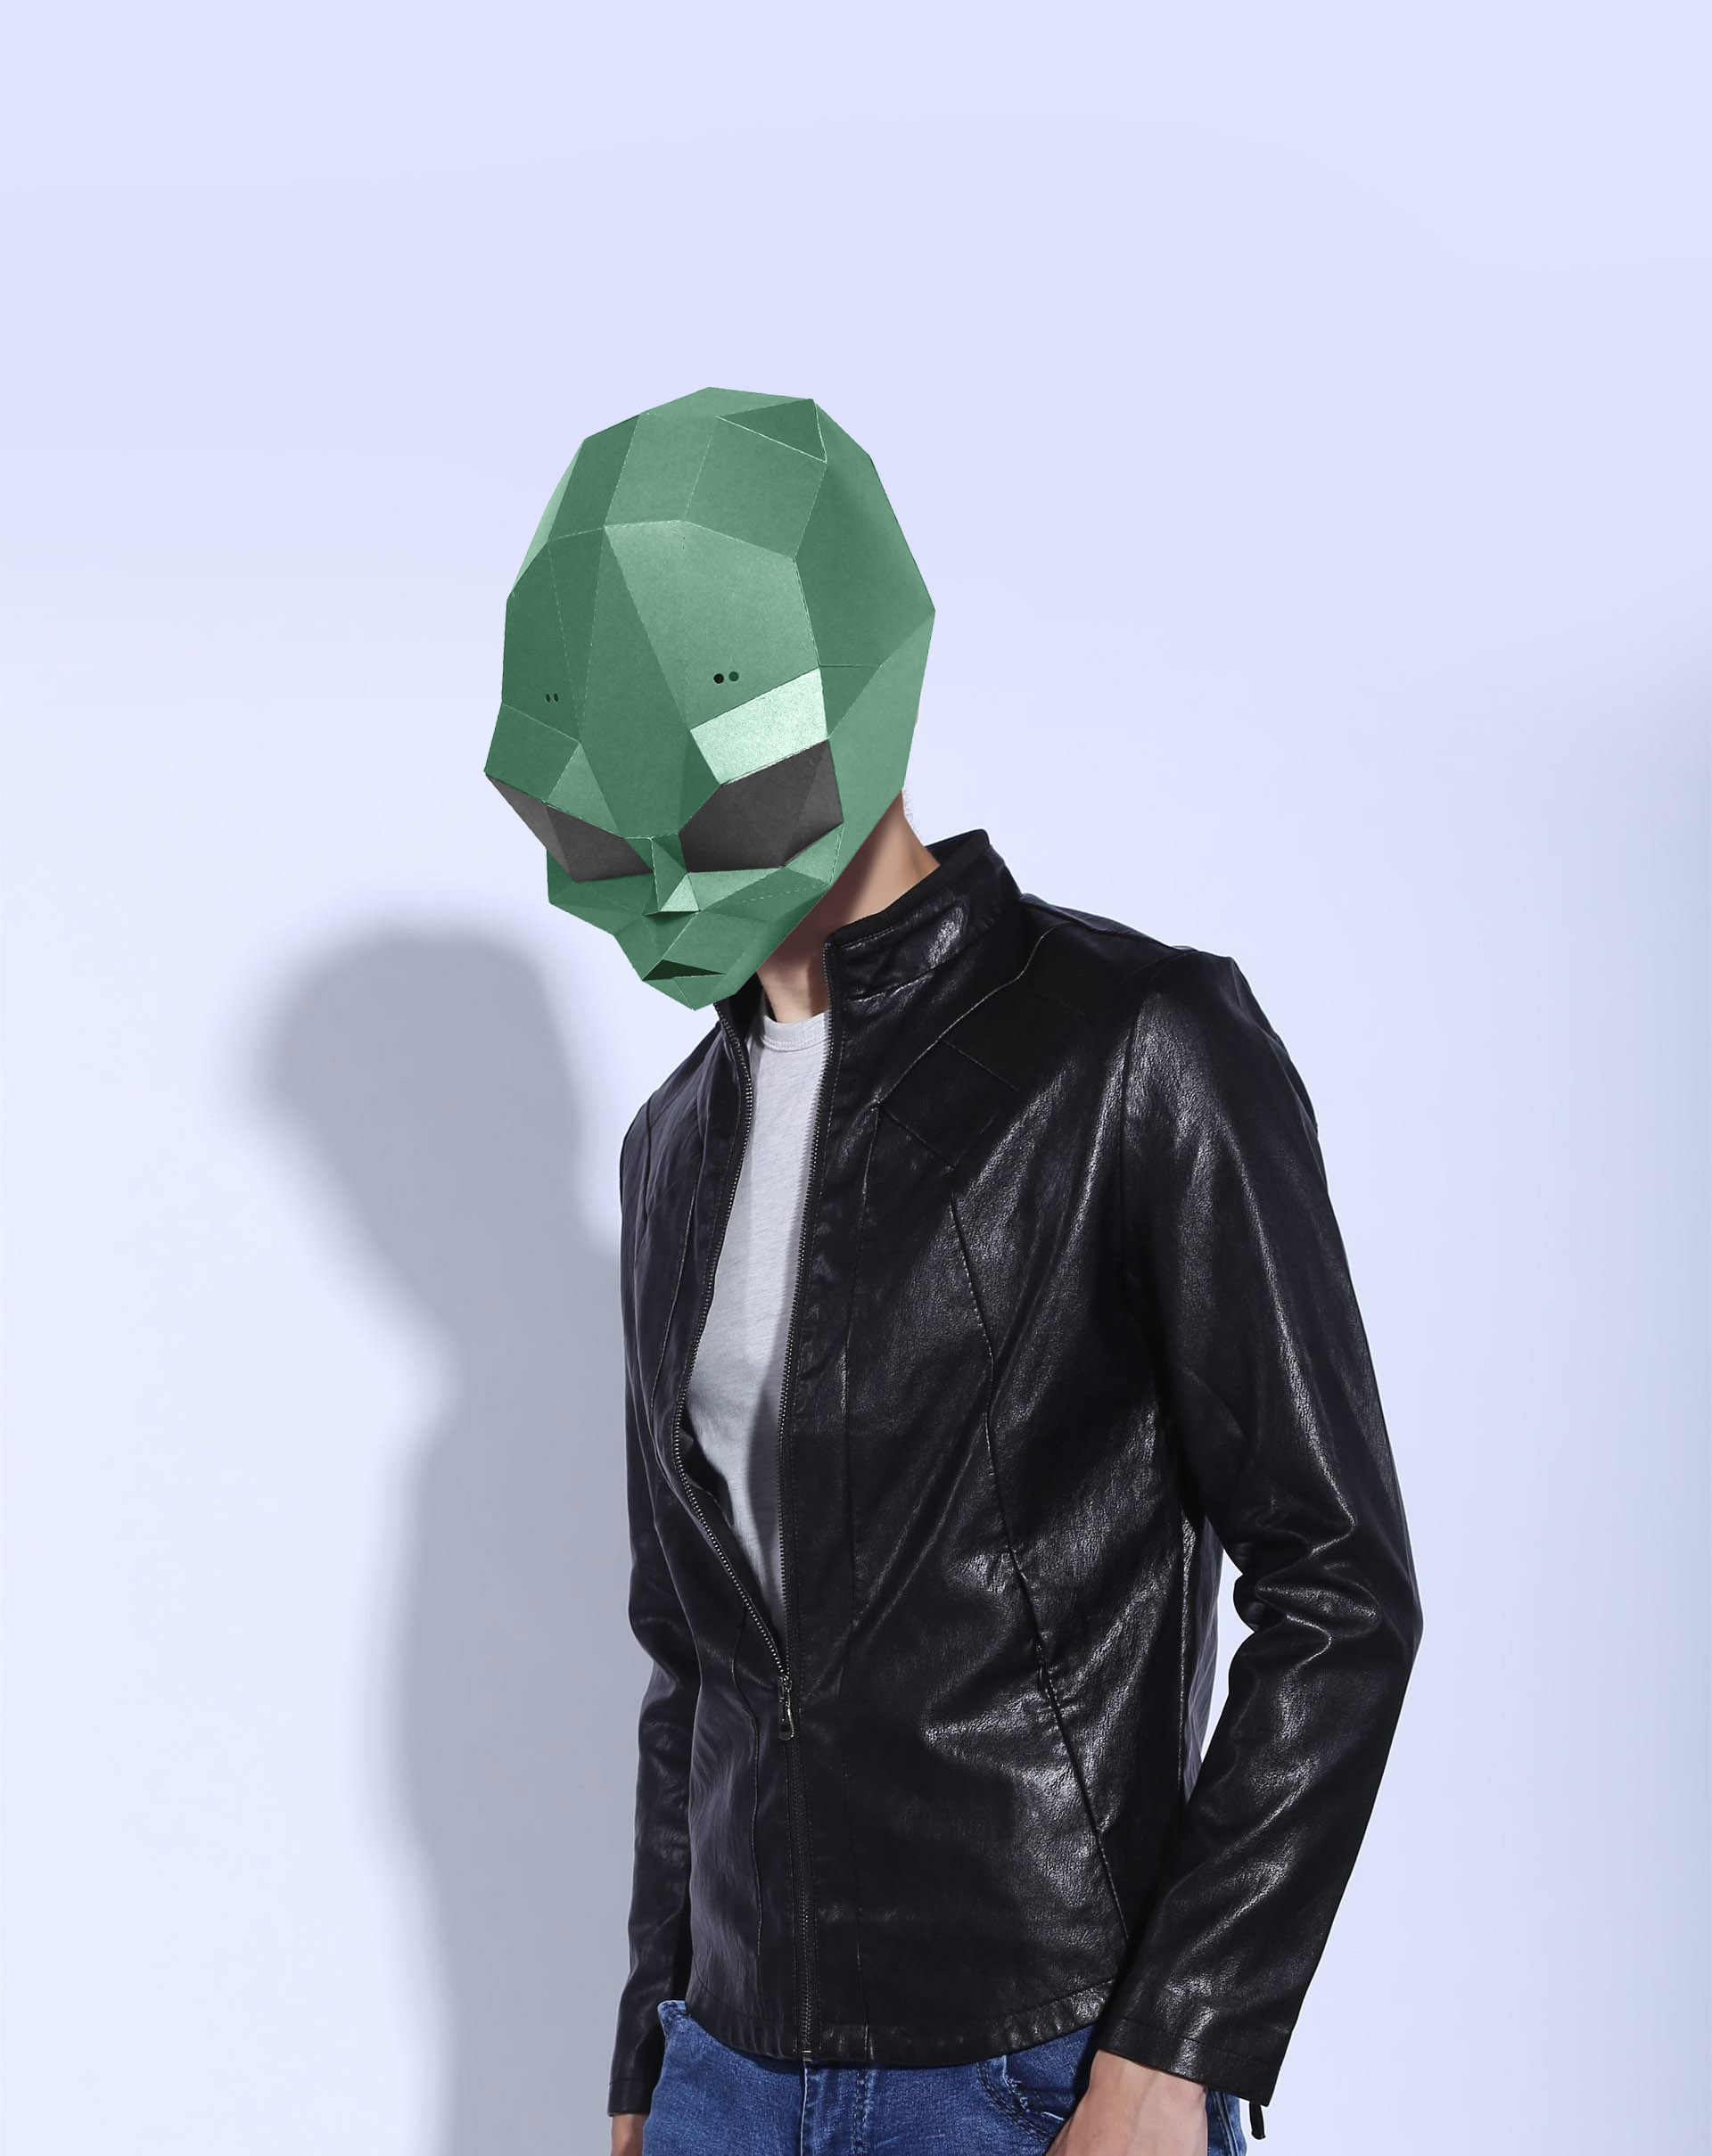 Paper Mask 3d ET Alien Costume Cosplay DIY Paper Craft Model Mask Christmas Halloween Prom Party Gift